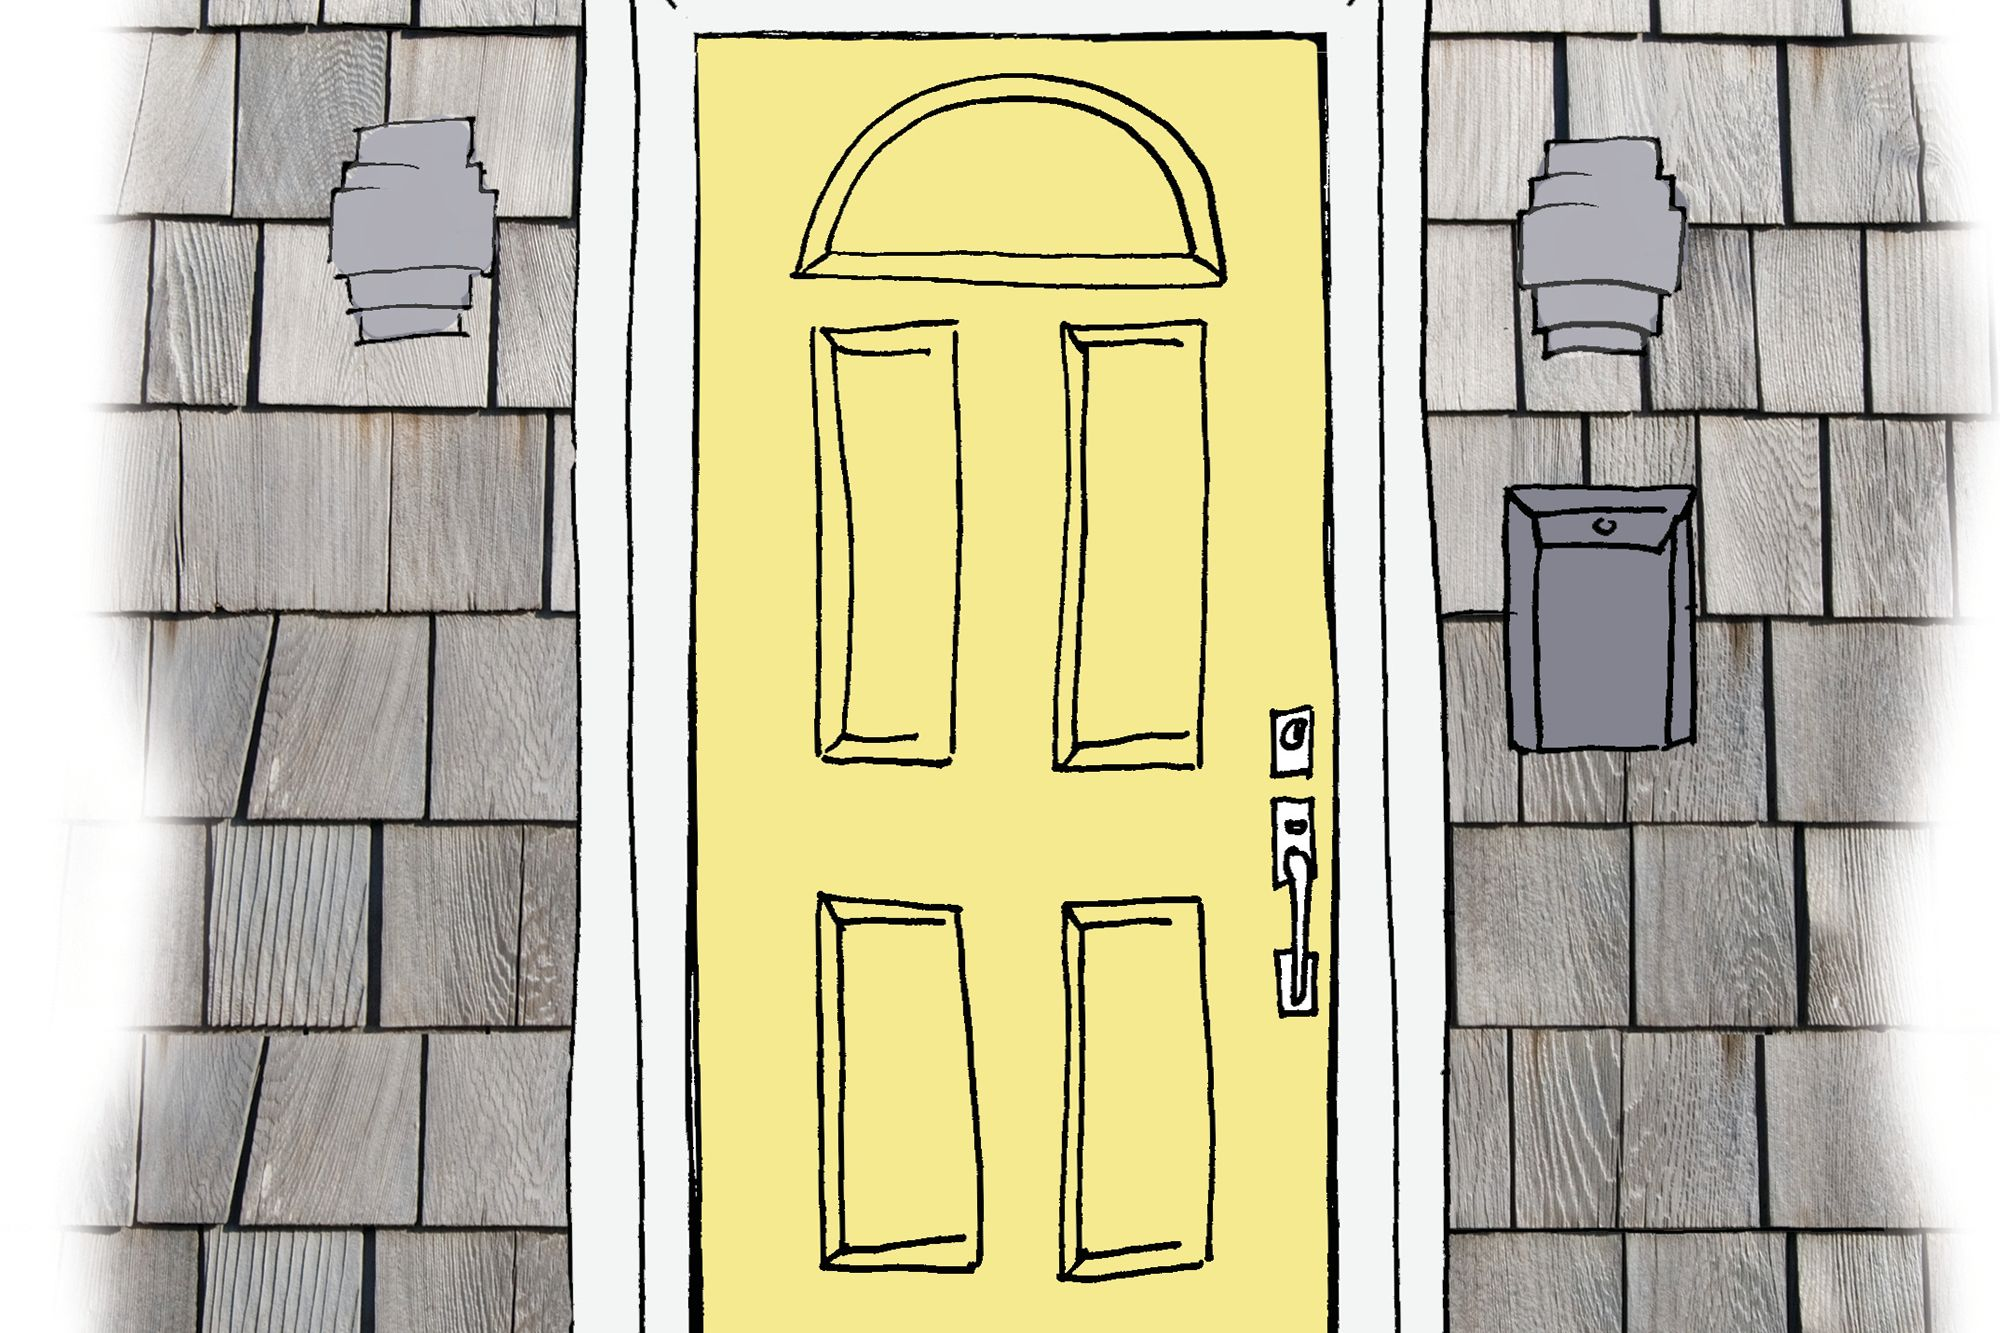 A soft, buttery yellow door brightens the gray facade, and white trim adds polish.